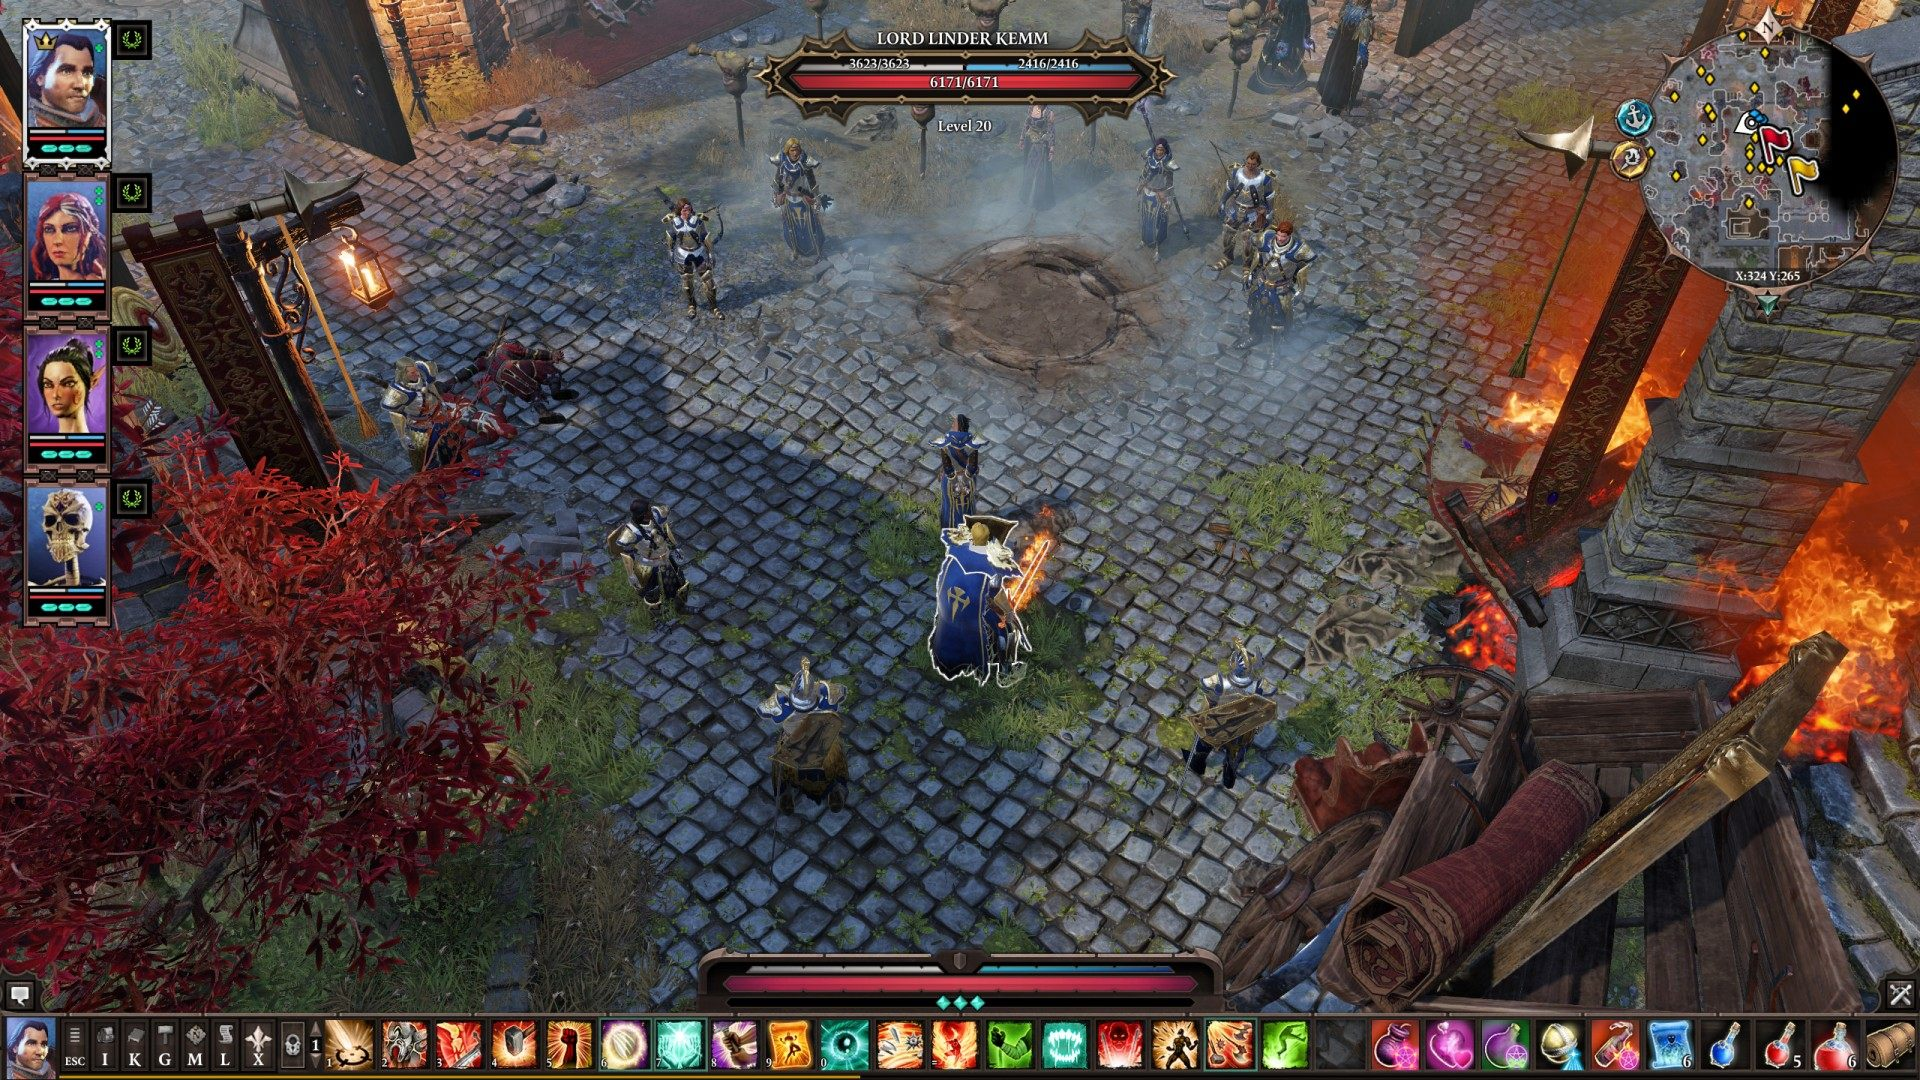 The Execution, Divinity: Original Sin 2 Quest